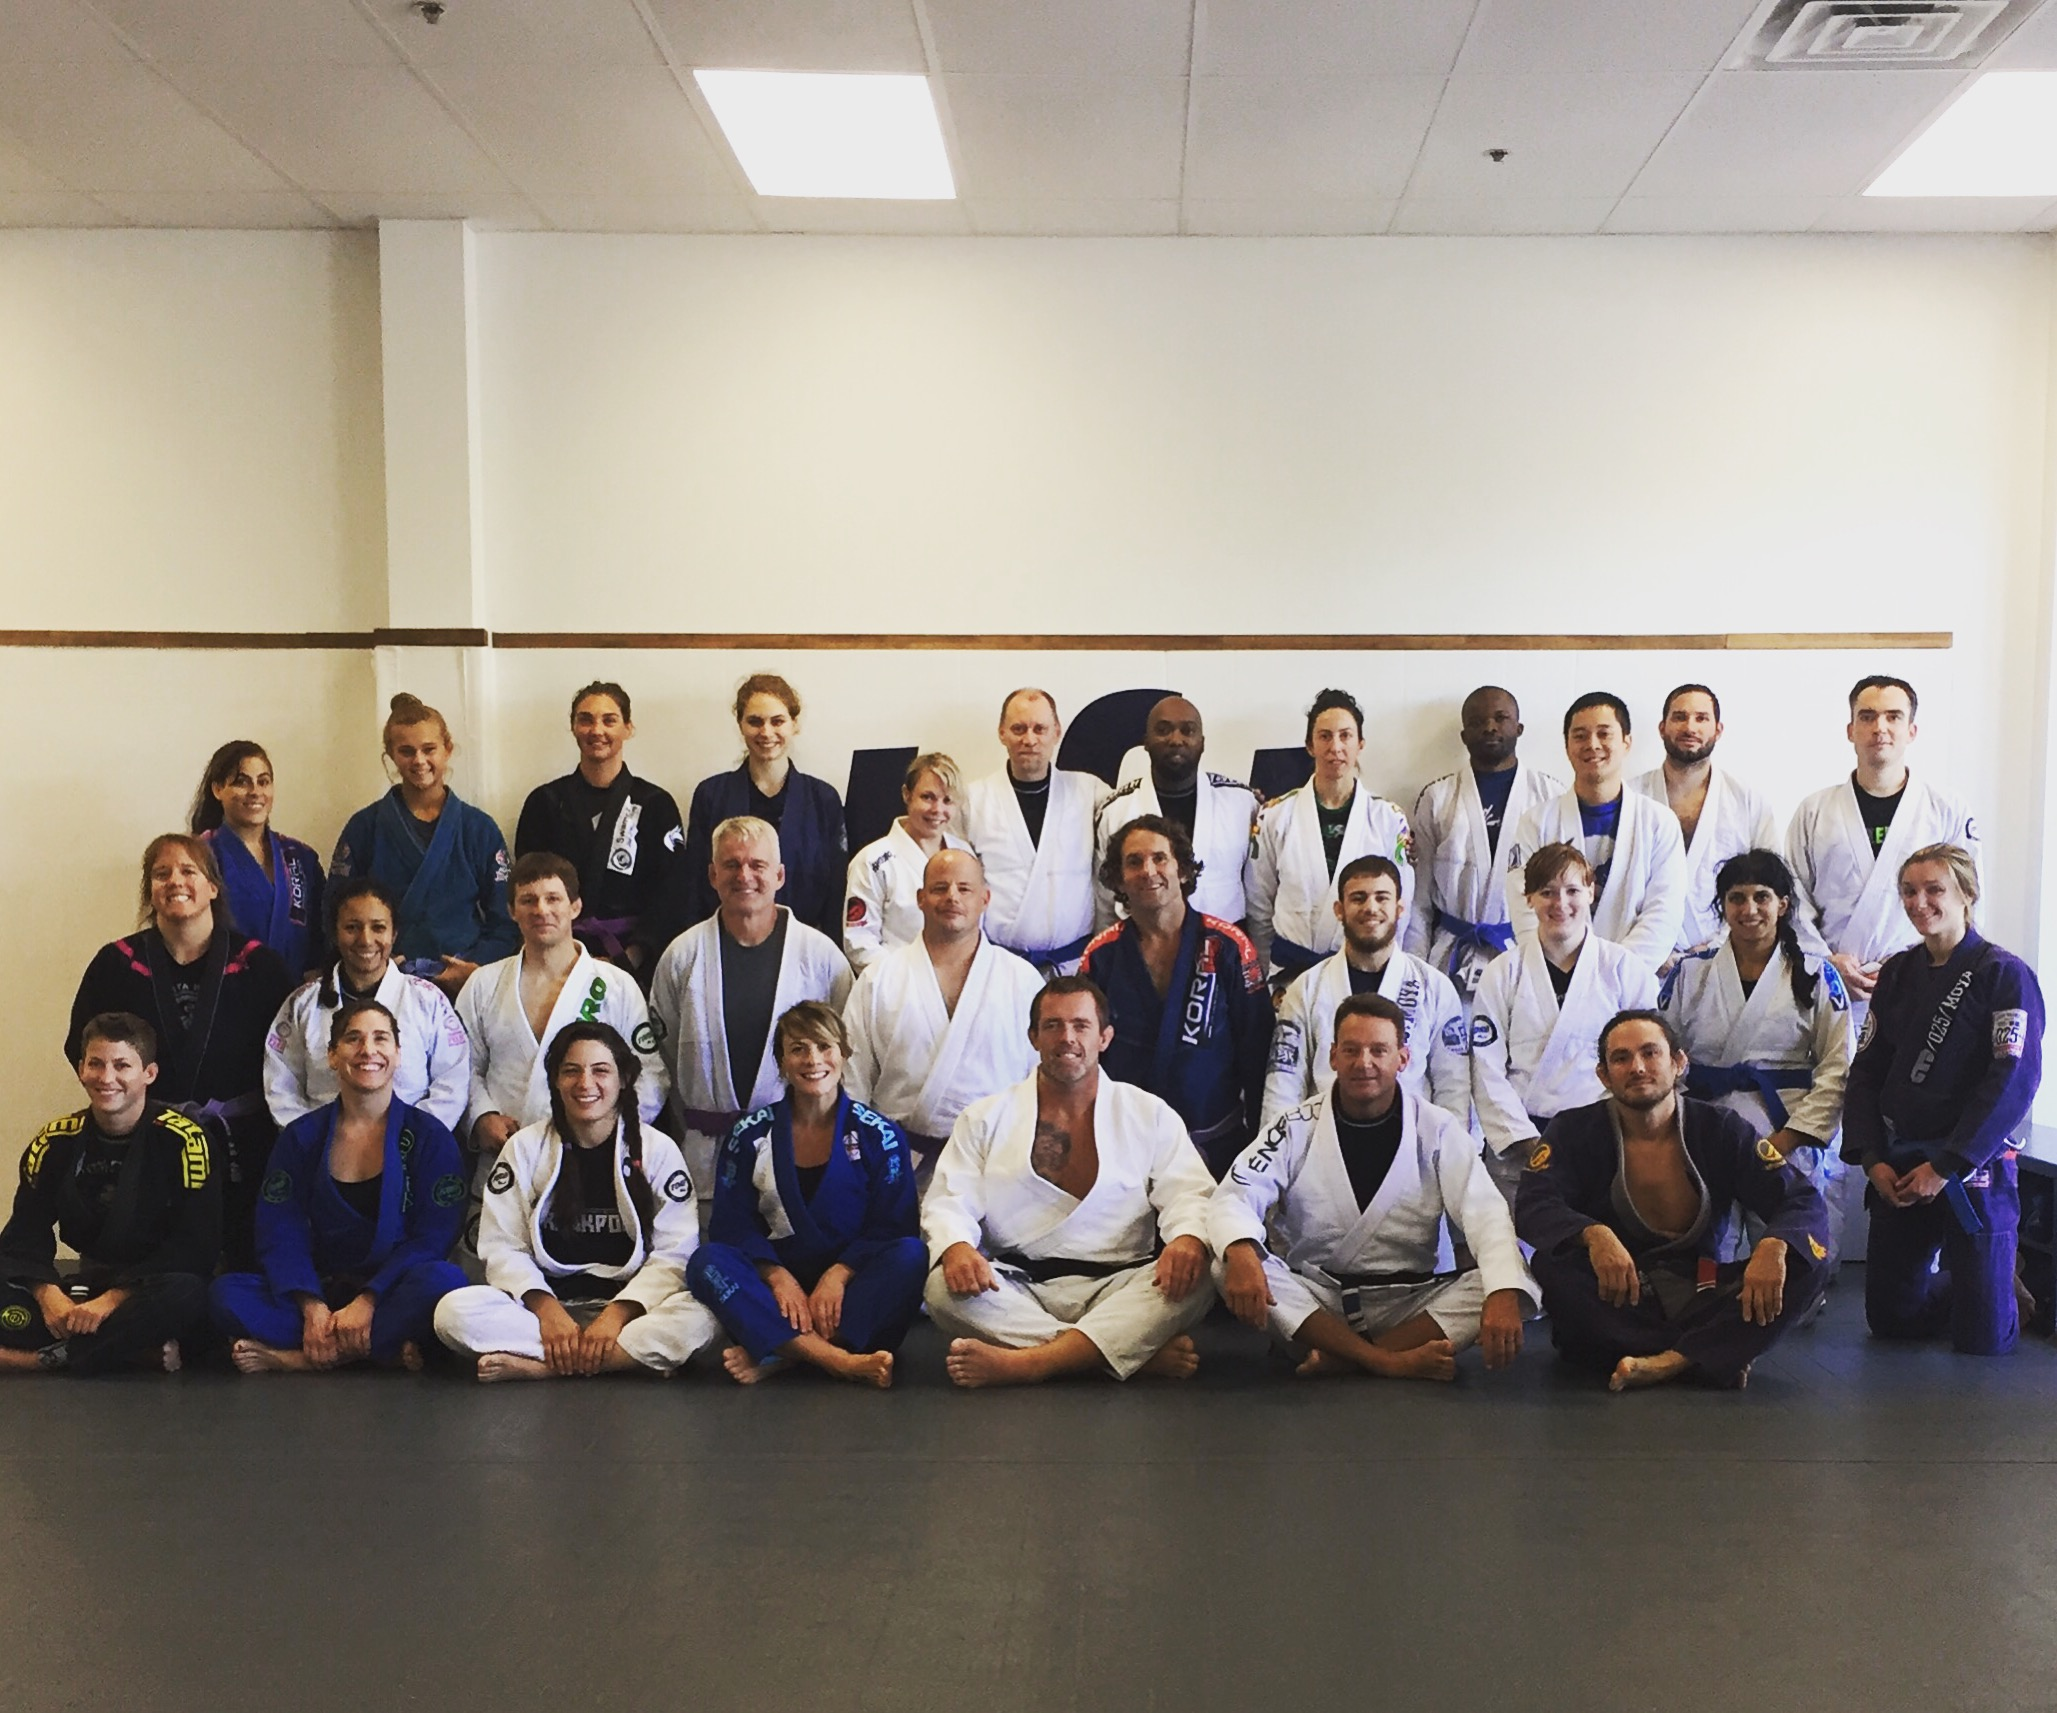 My  seminar with the guys and gals!